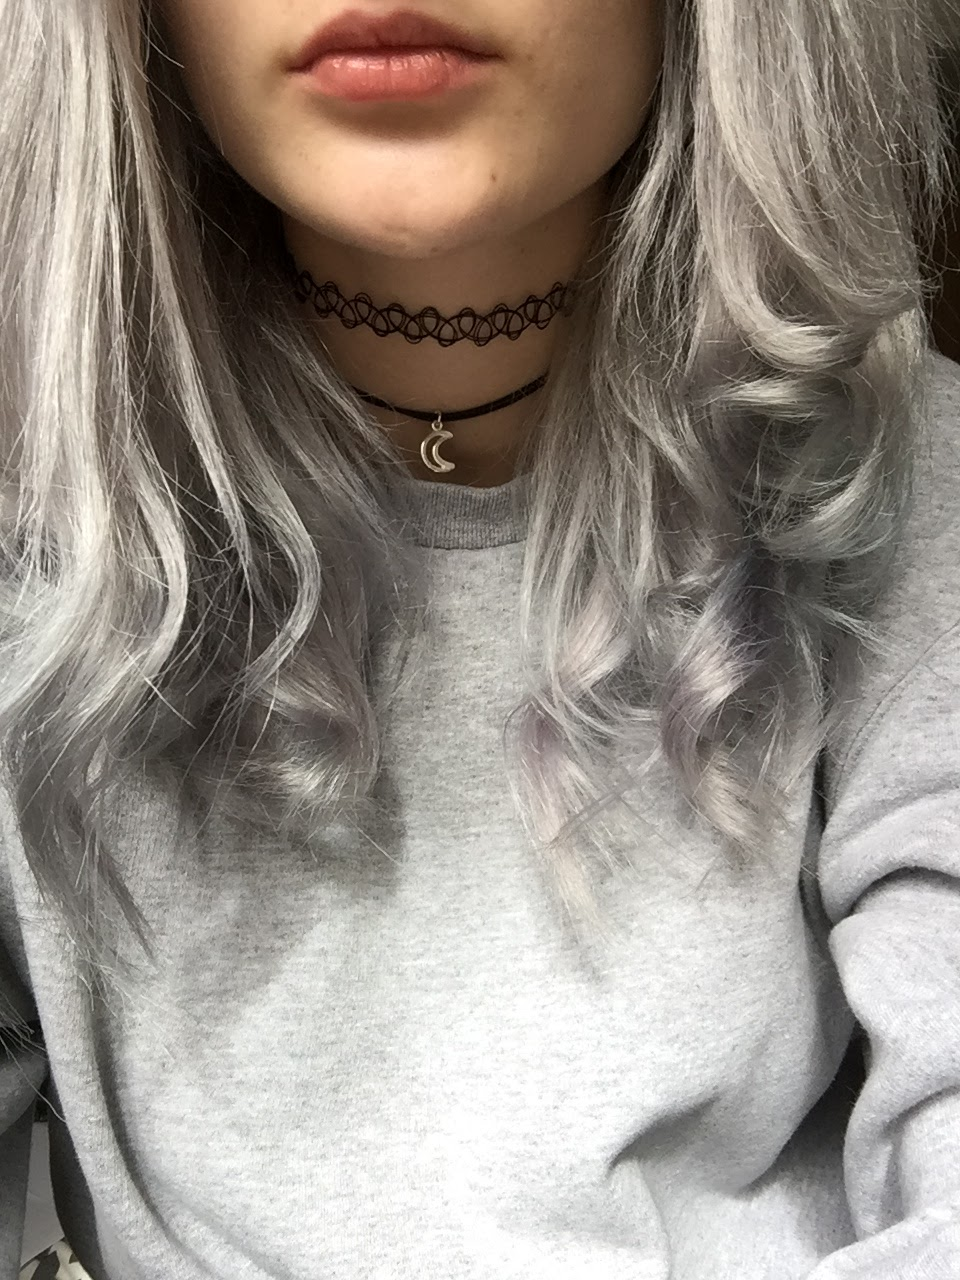 L Oreal Colorista Washout In Lilac Hair Update And